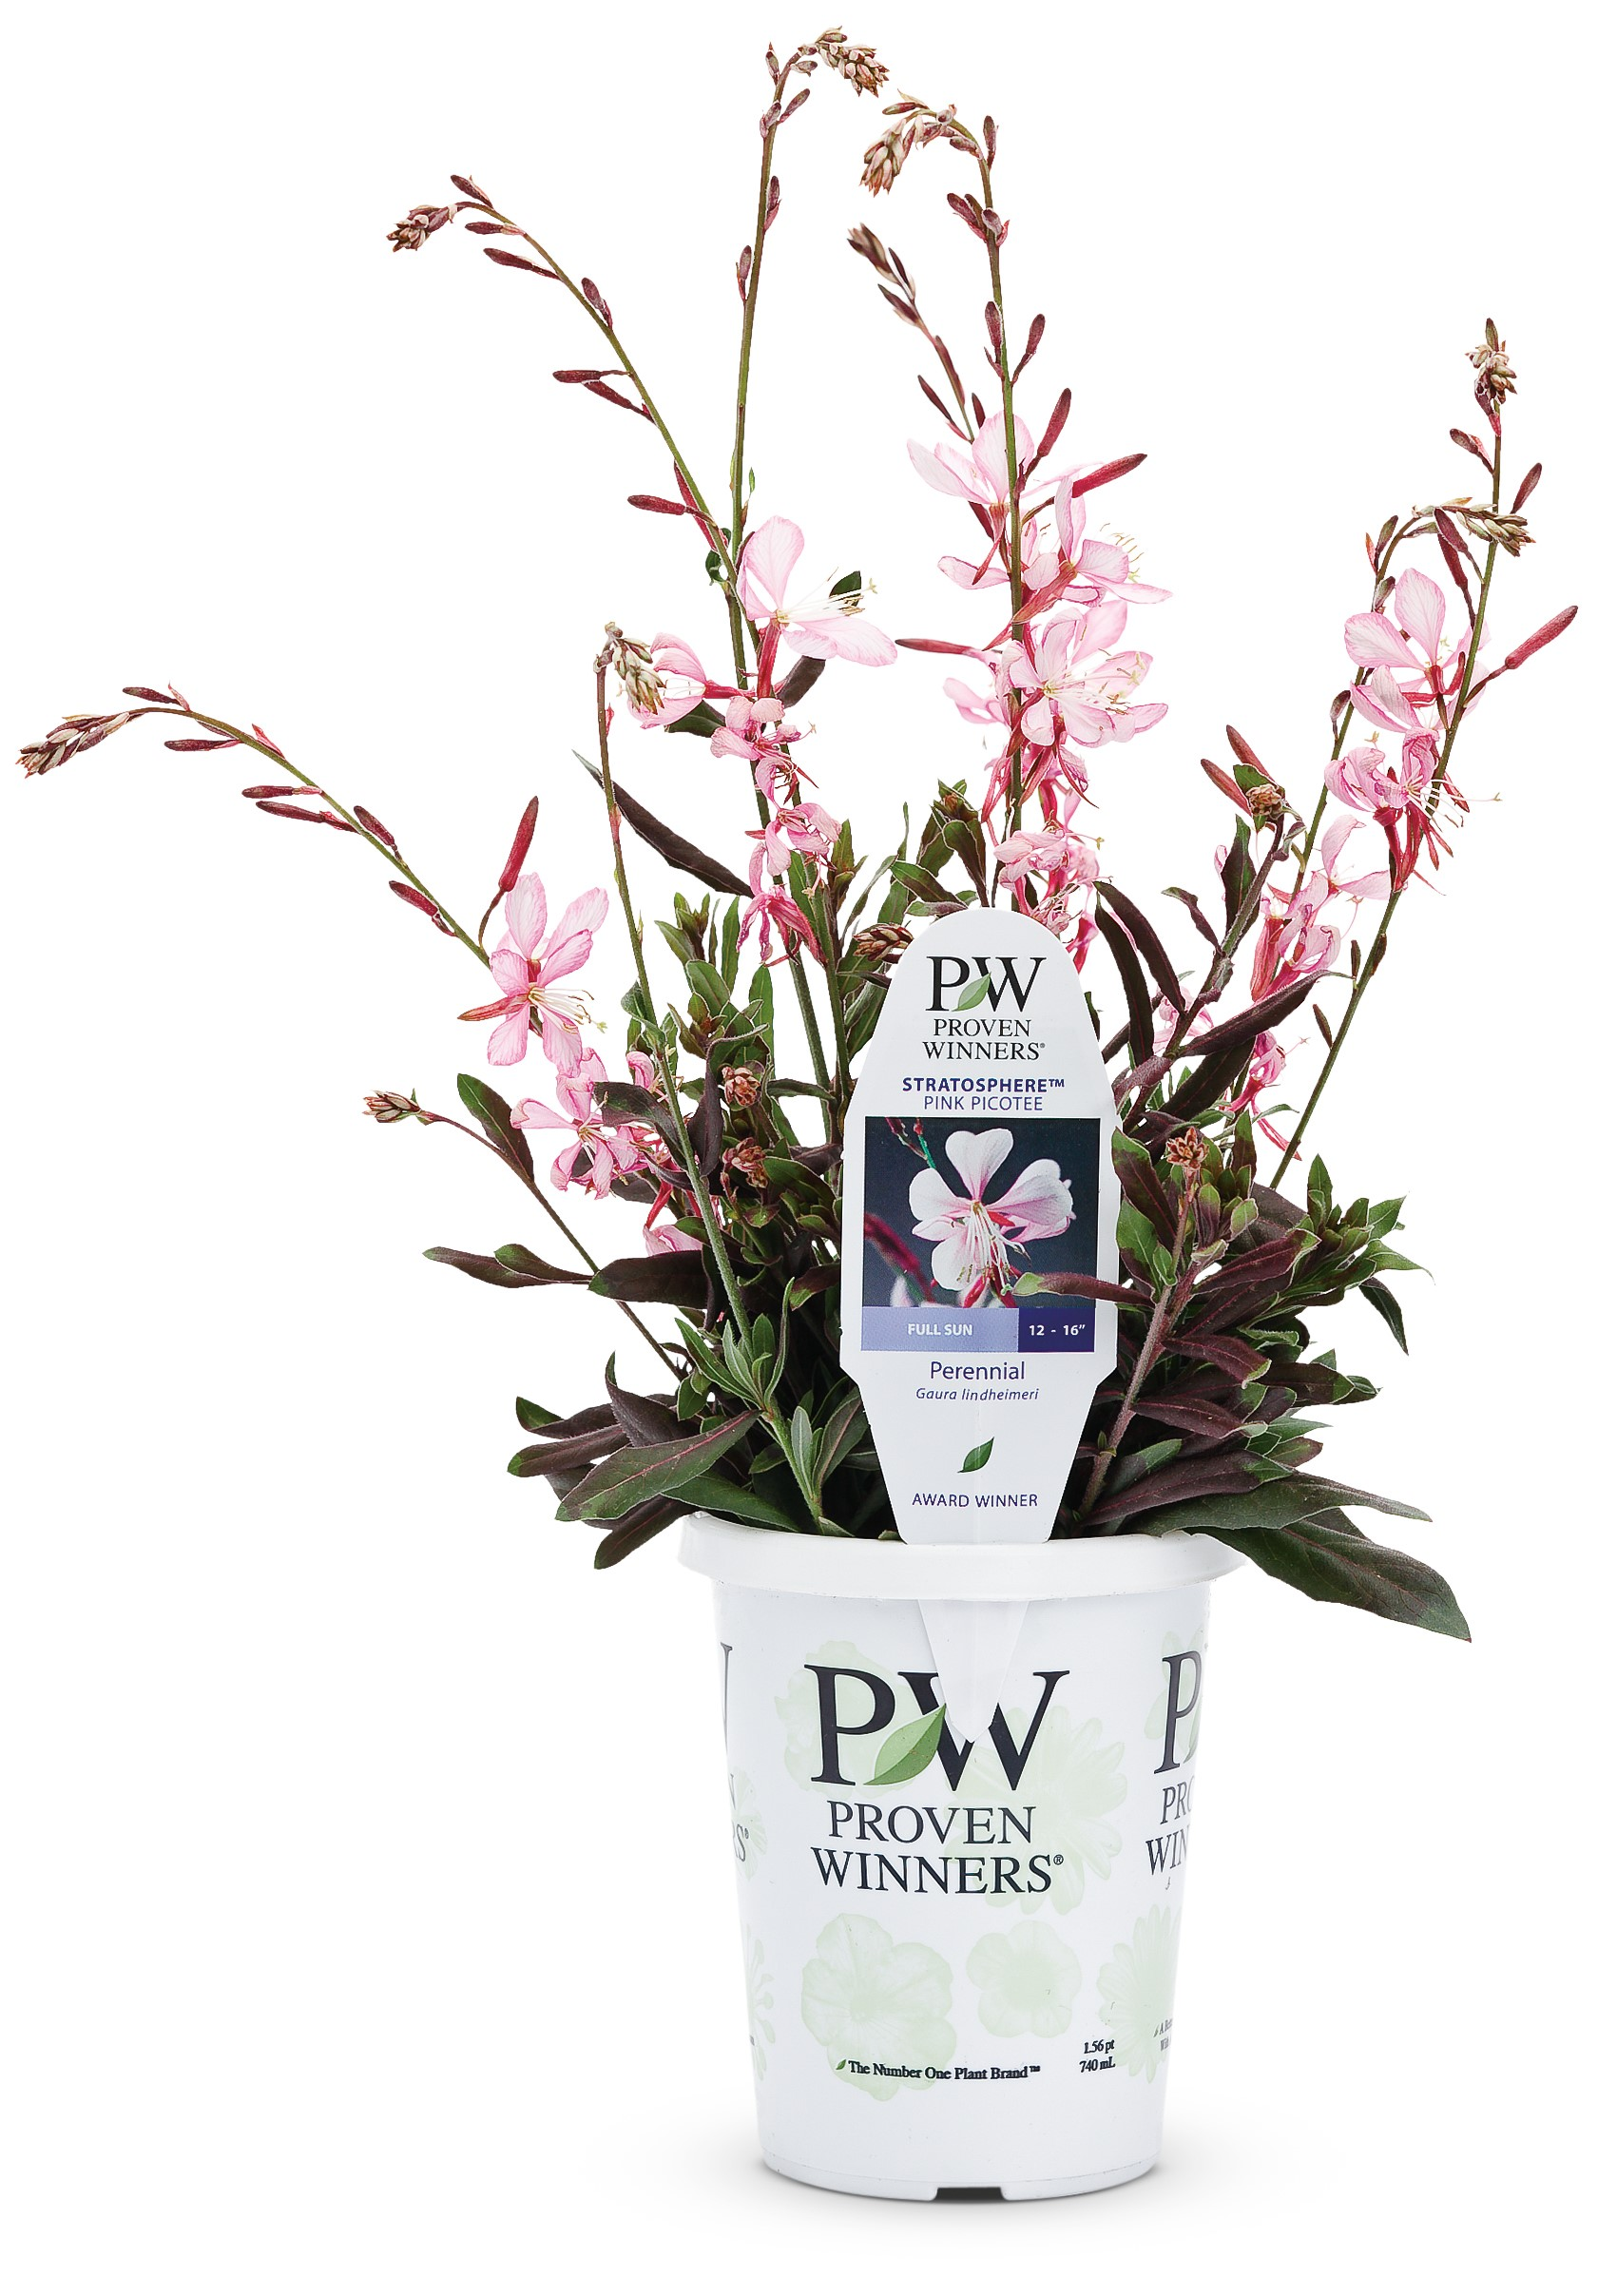 Proven Winners Stratosphere Pink Picotee Butterfly Flower Gaura Live